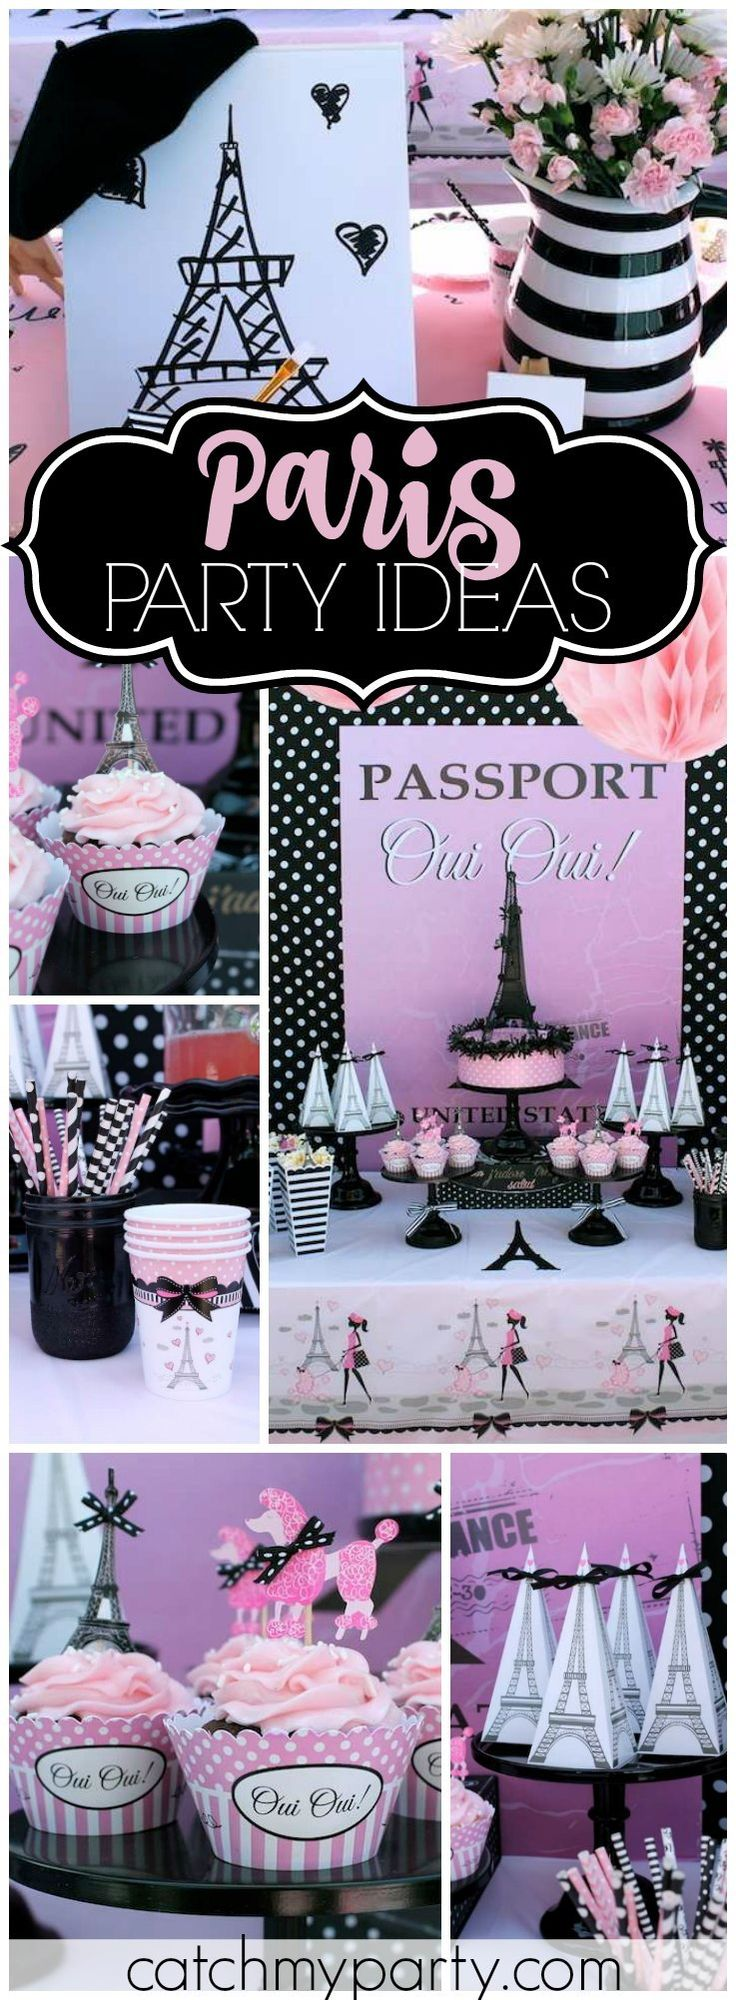 best 25+ paris theme ideas on pinterest | paris party, parisian